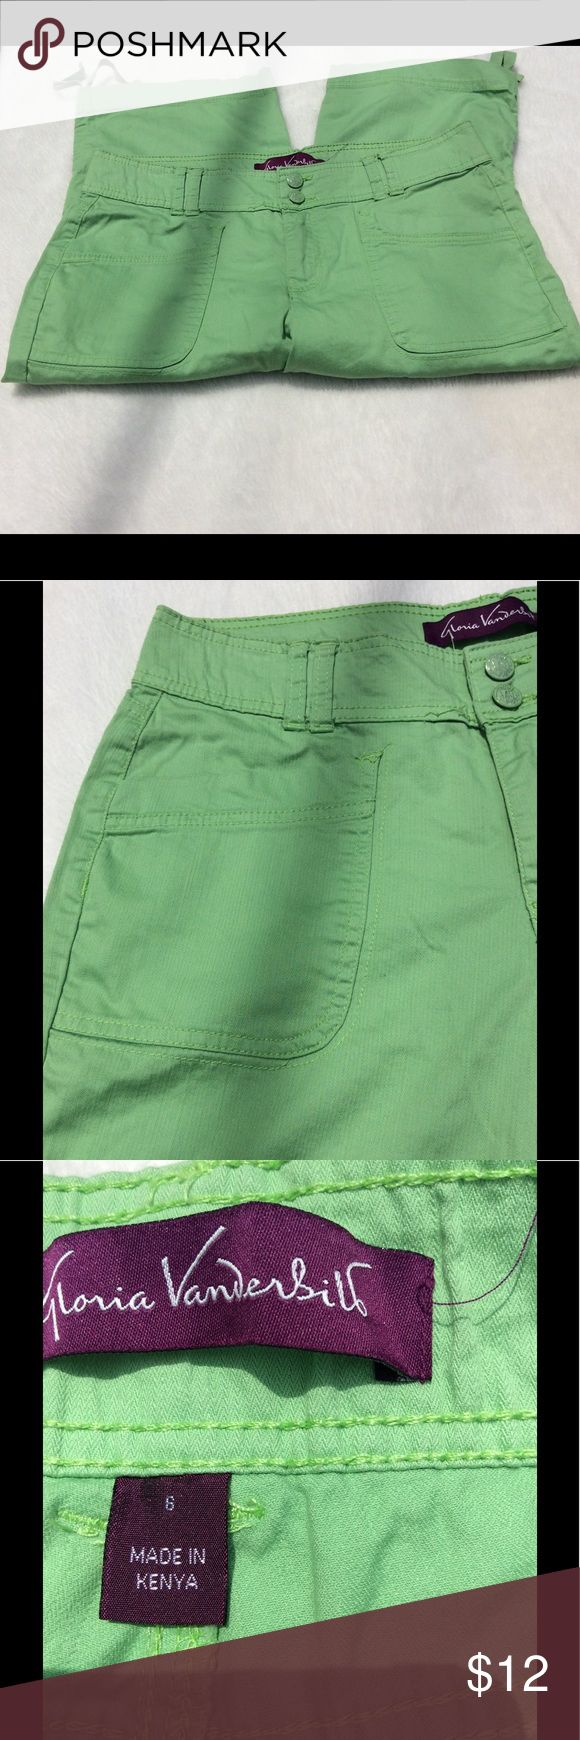 🆕Gloria Vanderbilt green stretch capris size 6 Gloria Vanderbilt green capris.  Two silver buttons in front as well as zipper closure. Two front pockets and two back pockets. Back pockets has embroidered designs on them. Wide legs with ties,  Has some stretch to them. Size 6. Note:  one minor flaw some loose threads in front of pants near waistline see last photo.   Materials:  97% cotton 3 % spandex  Measurements:  Length:  25 inches  Waist:  16 1/2 inches side to side  Inseam:  16 inches…